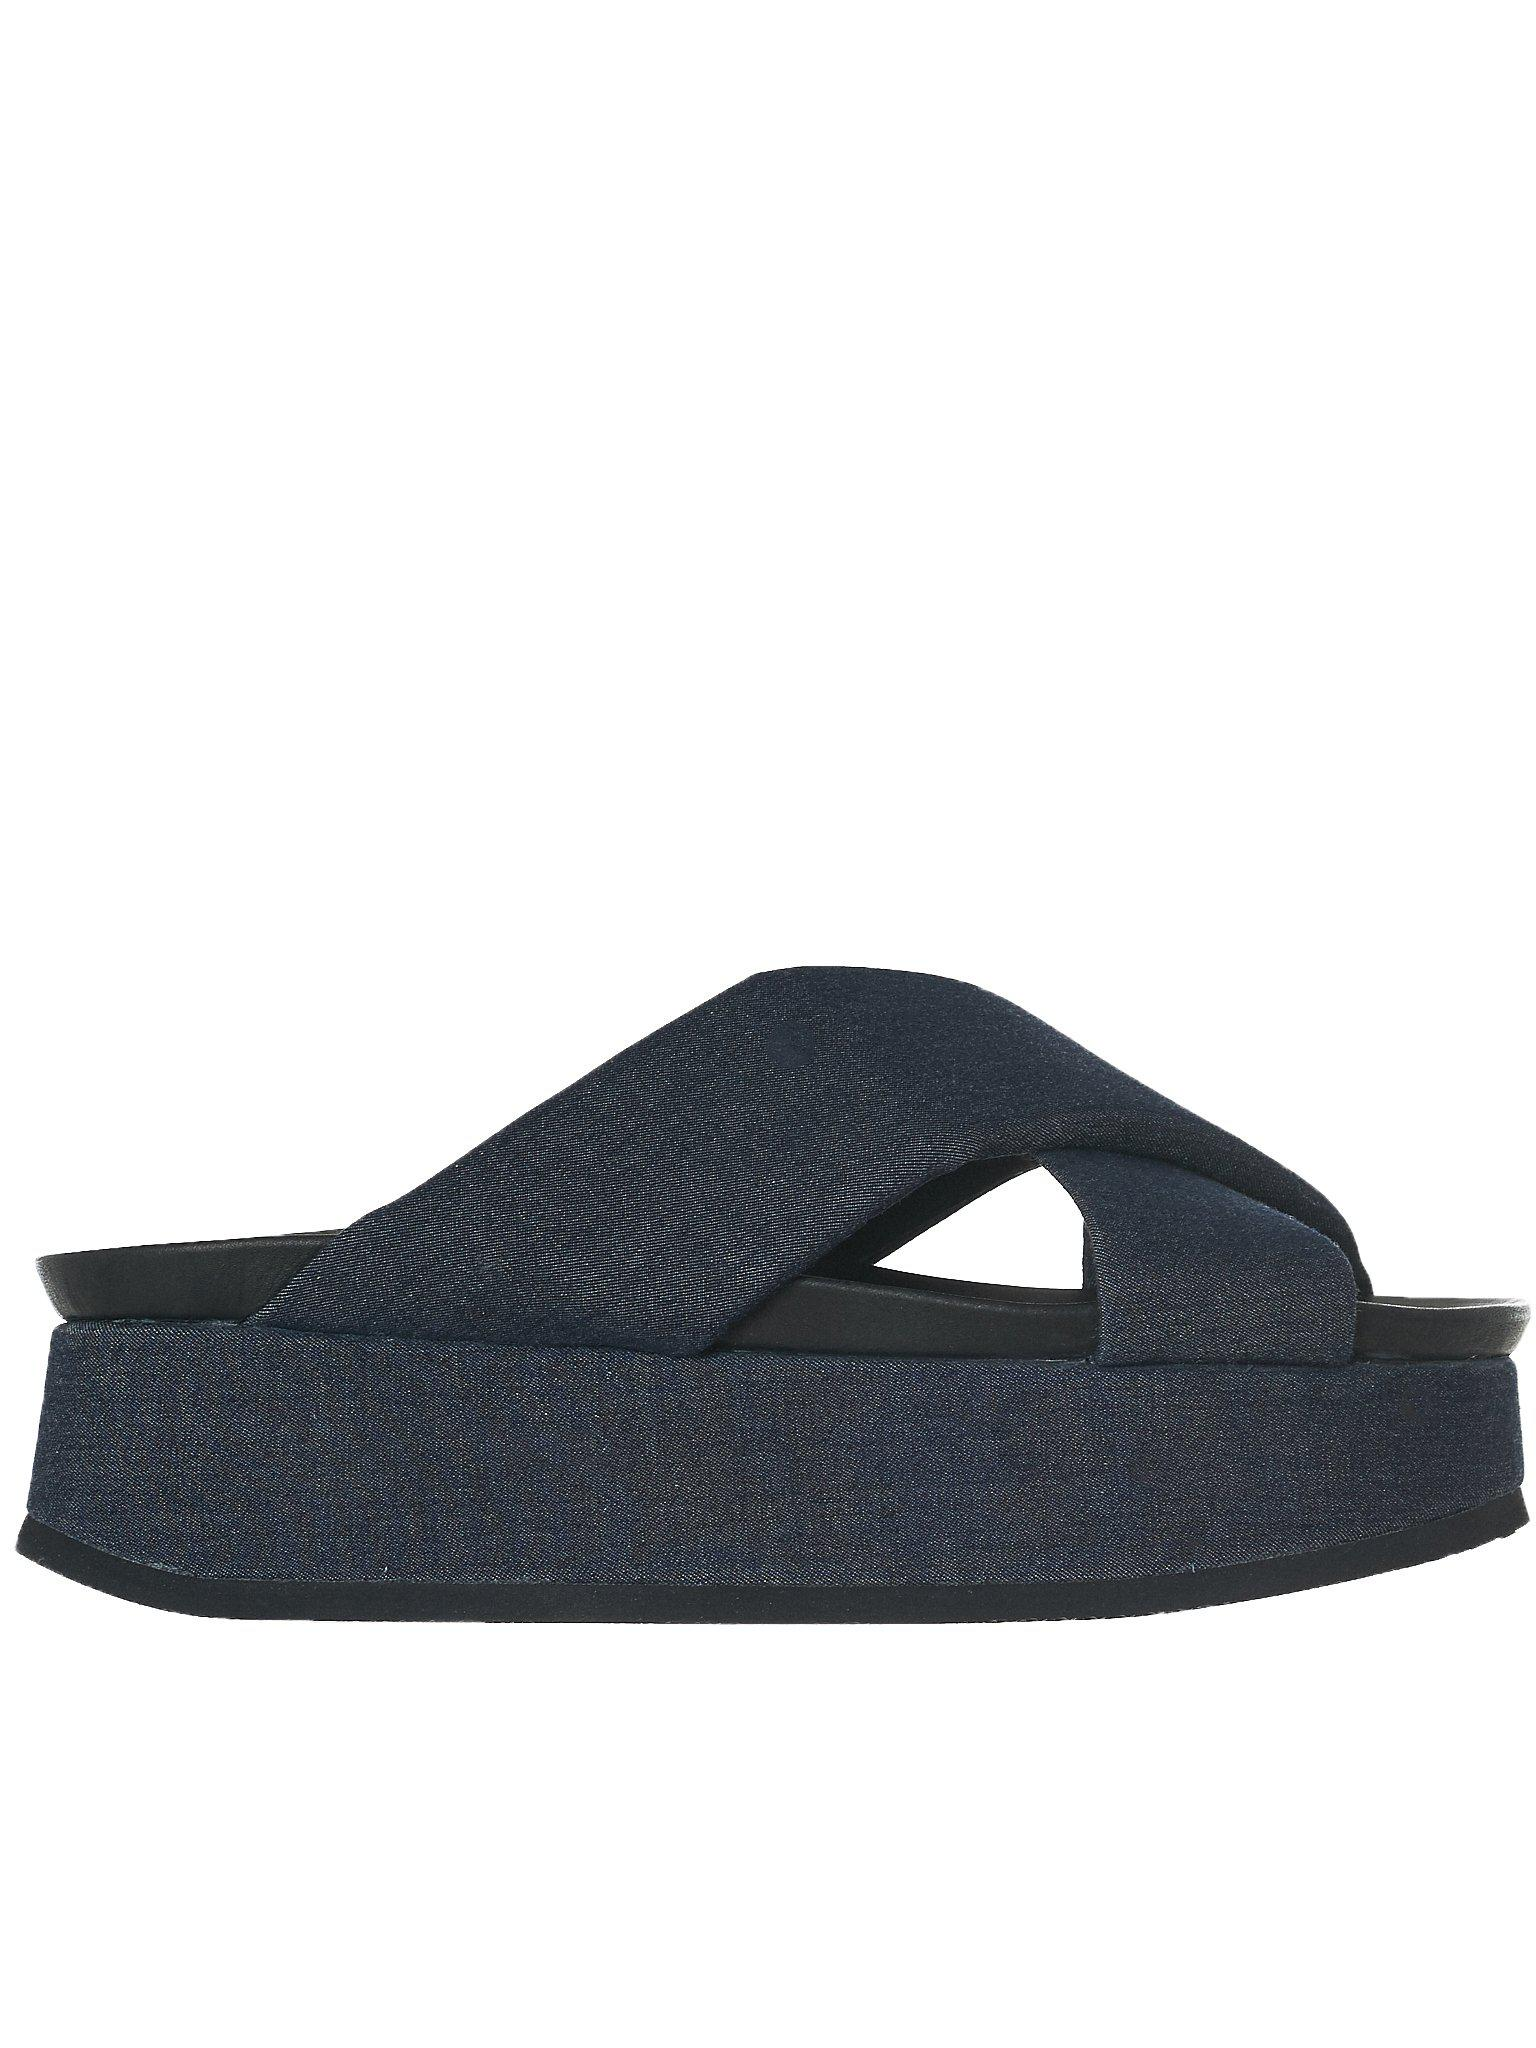 PETER NON Cruz sandals